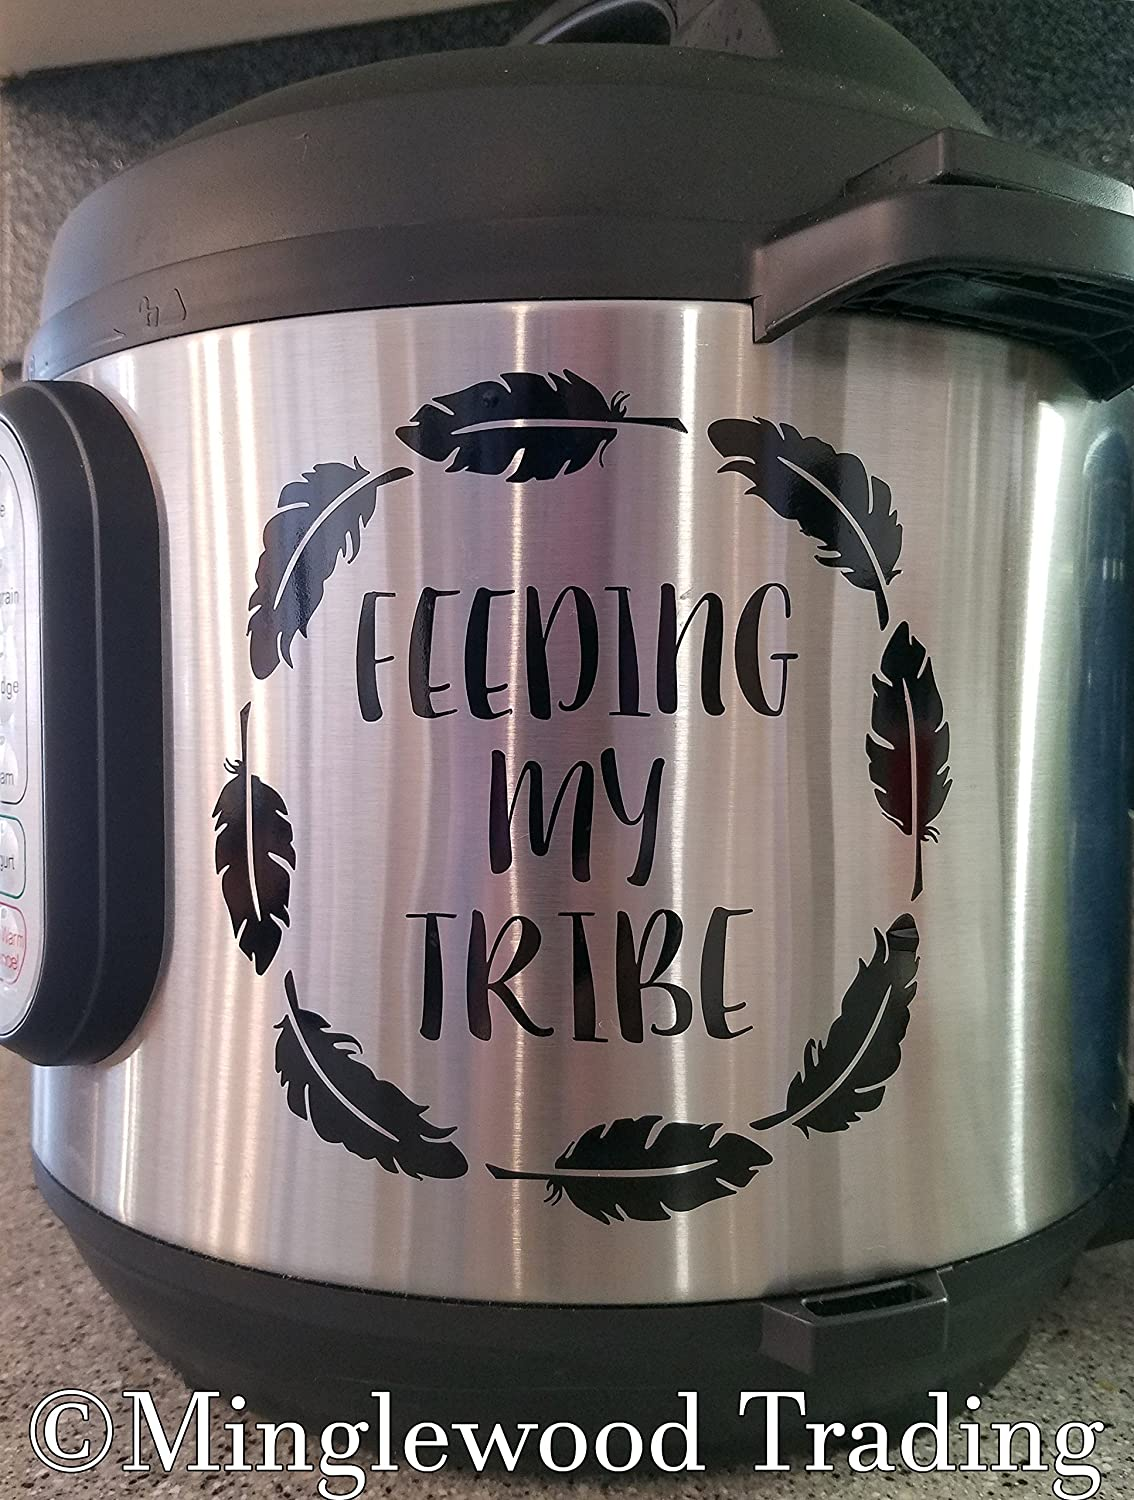 "Feeding My Tribe 5.5"" x 5.5"" Vinyl Decal Sticker for Instant Pot - Feathers - 20 Color Options - Black"